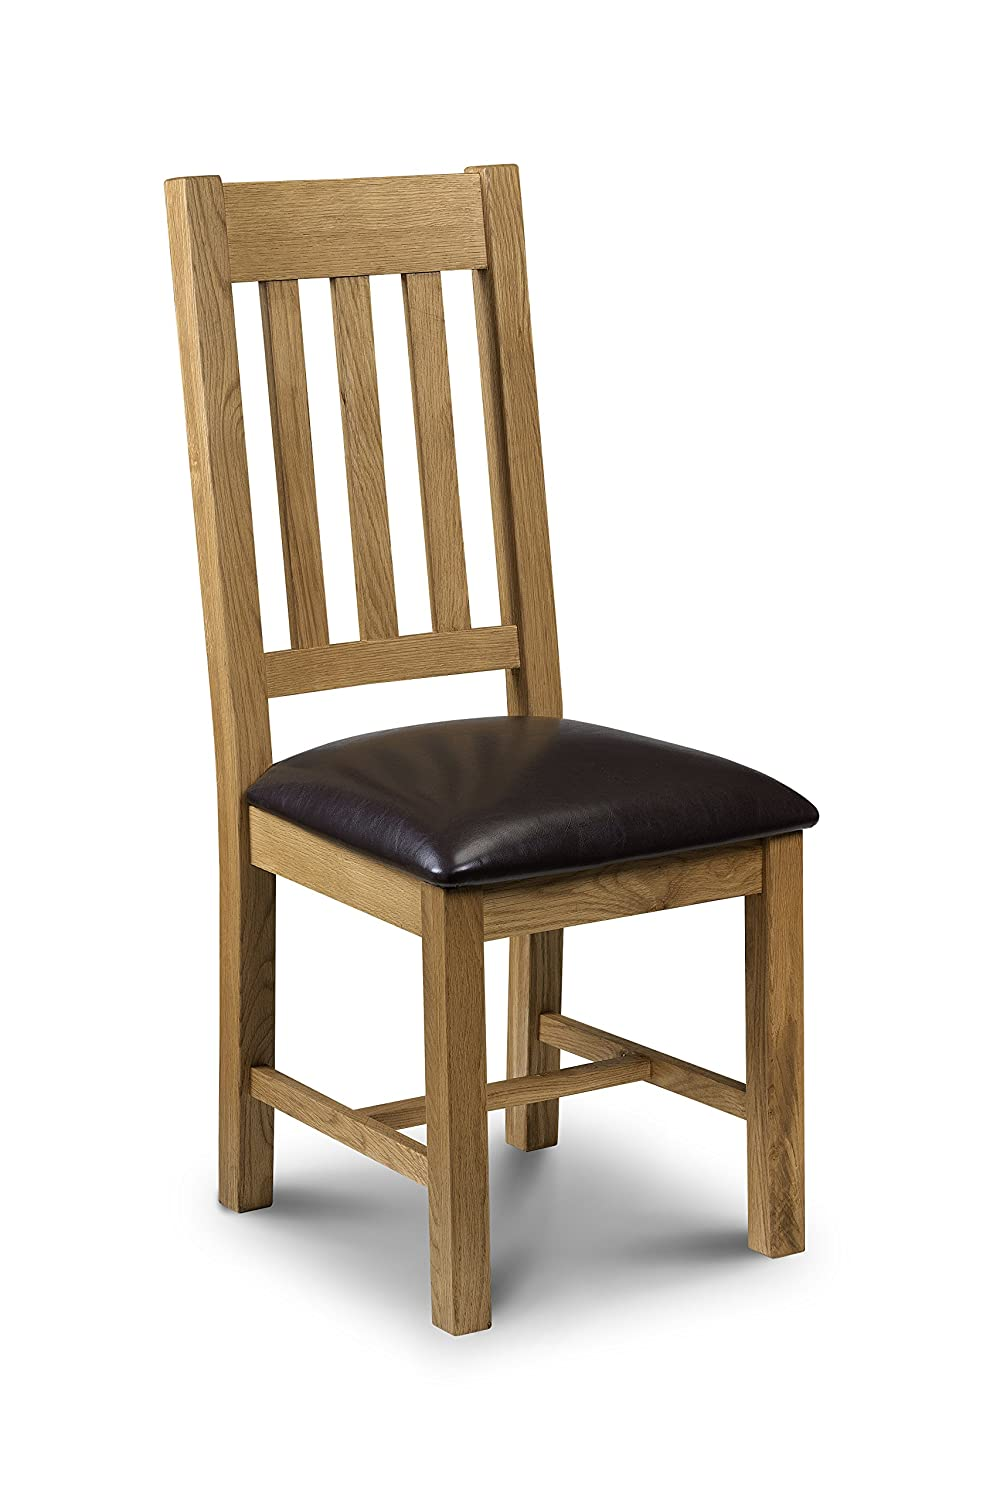 chairs dining breton chair pair uk furniture oak main lifestyle